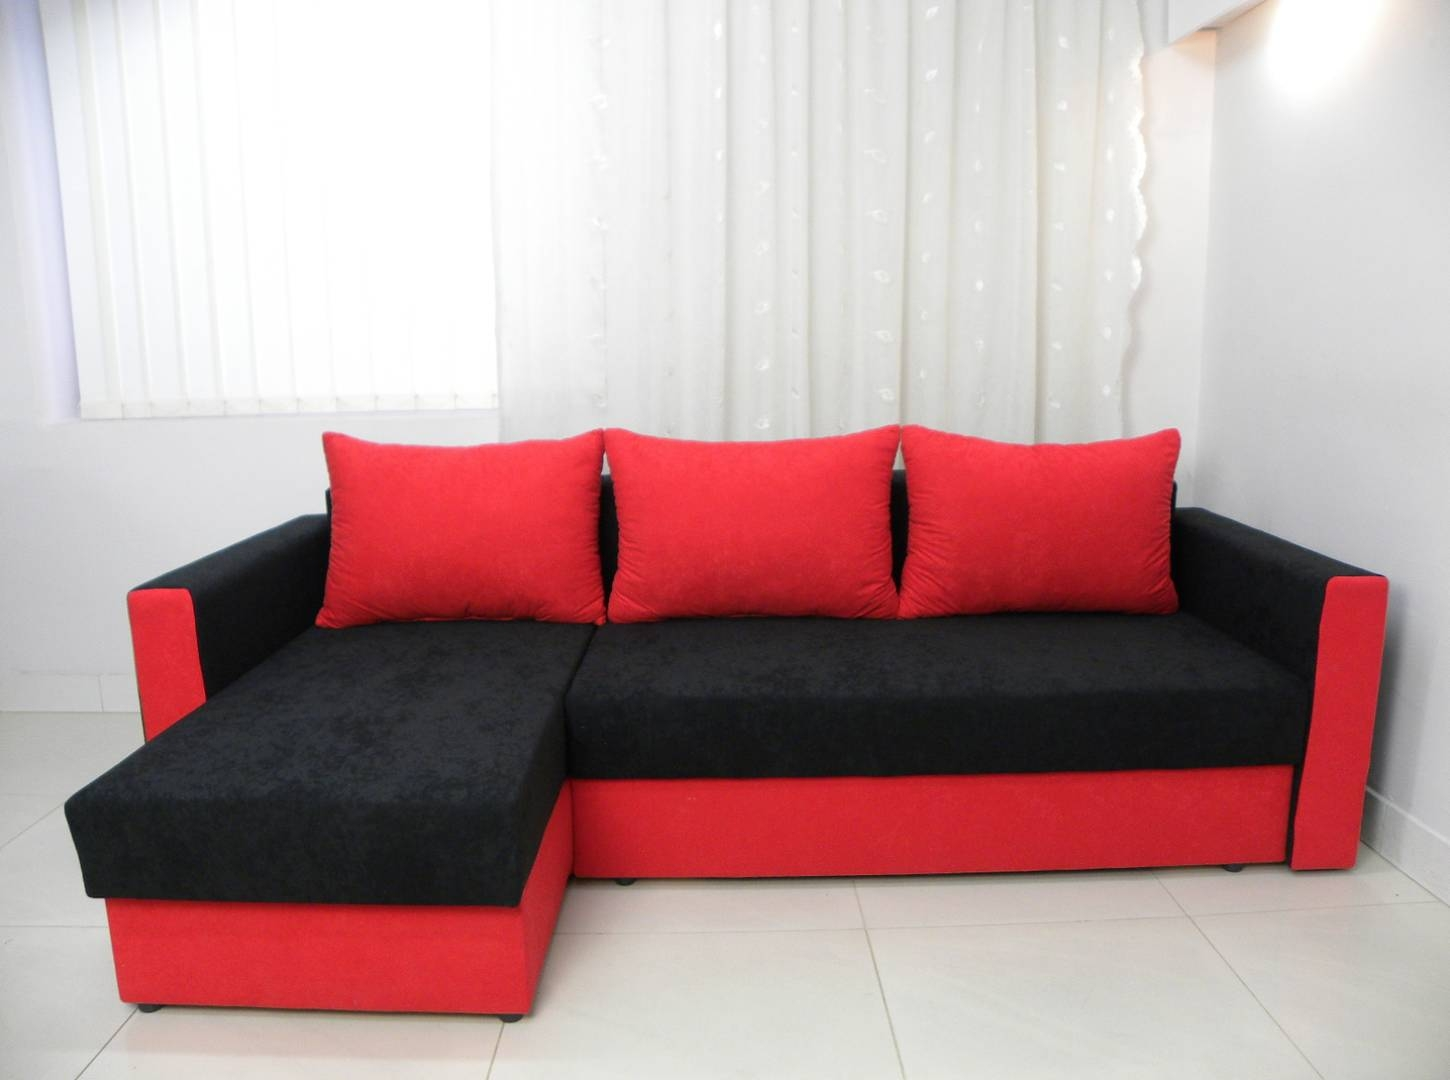 Home Decor Red Andack Living Room Download House Sofa Breathtaking for Black And Red Sofas (Image 8 of 15)